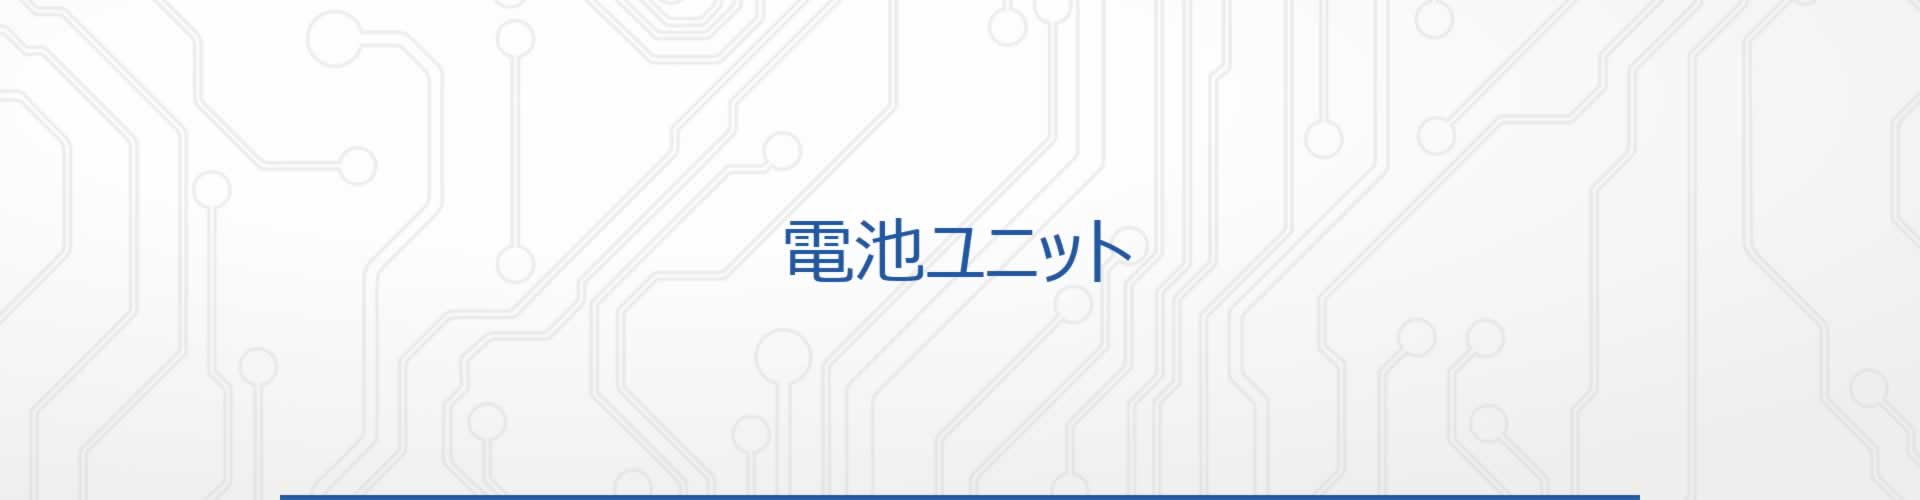 電池ユニット-EEMB - Provide All Your Power Needs